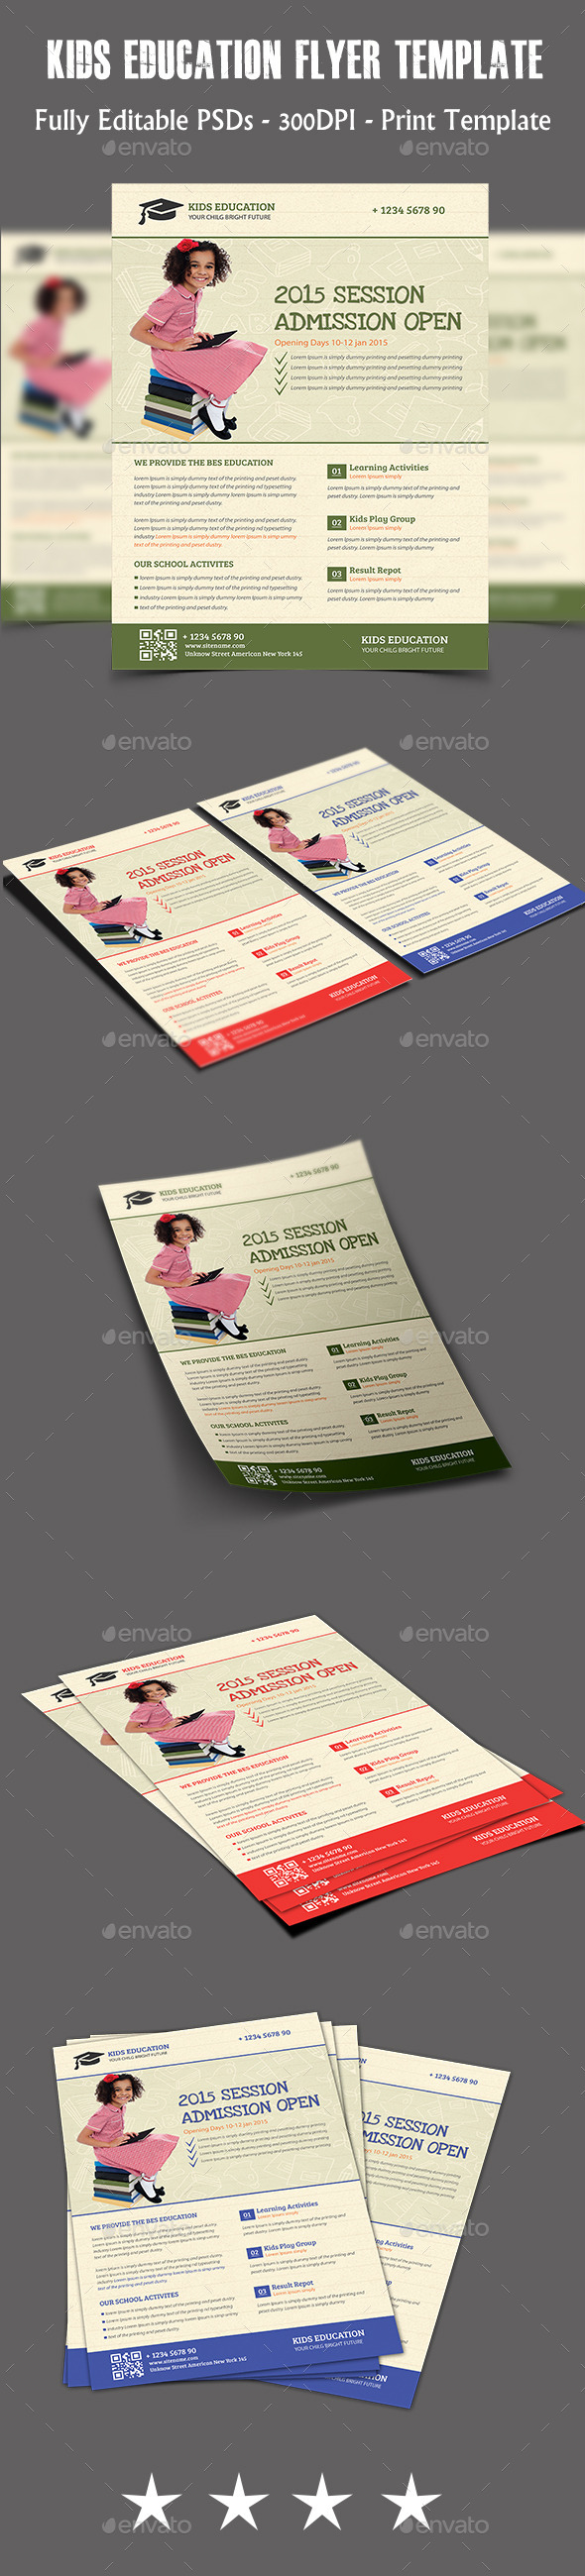 GraphicRiver Kids Education Flyer Temp 11299871